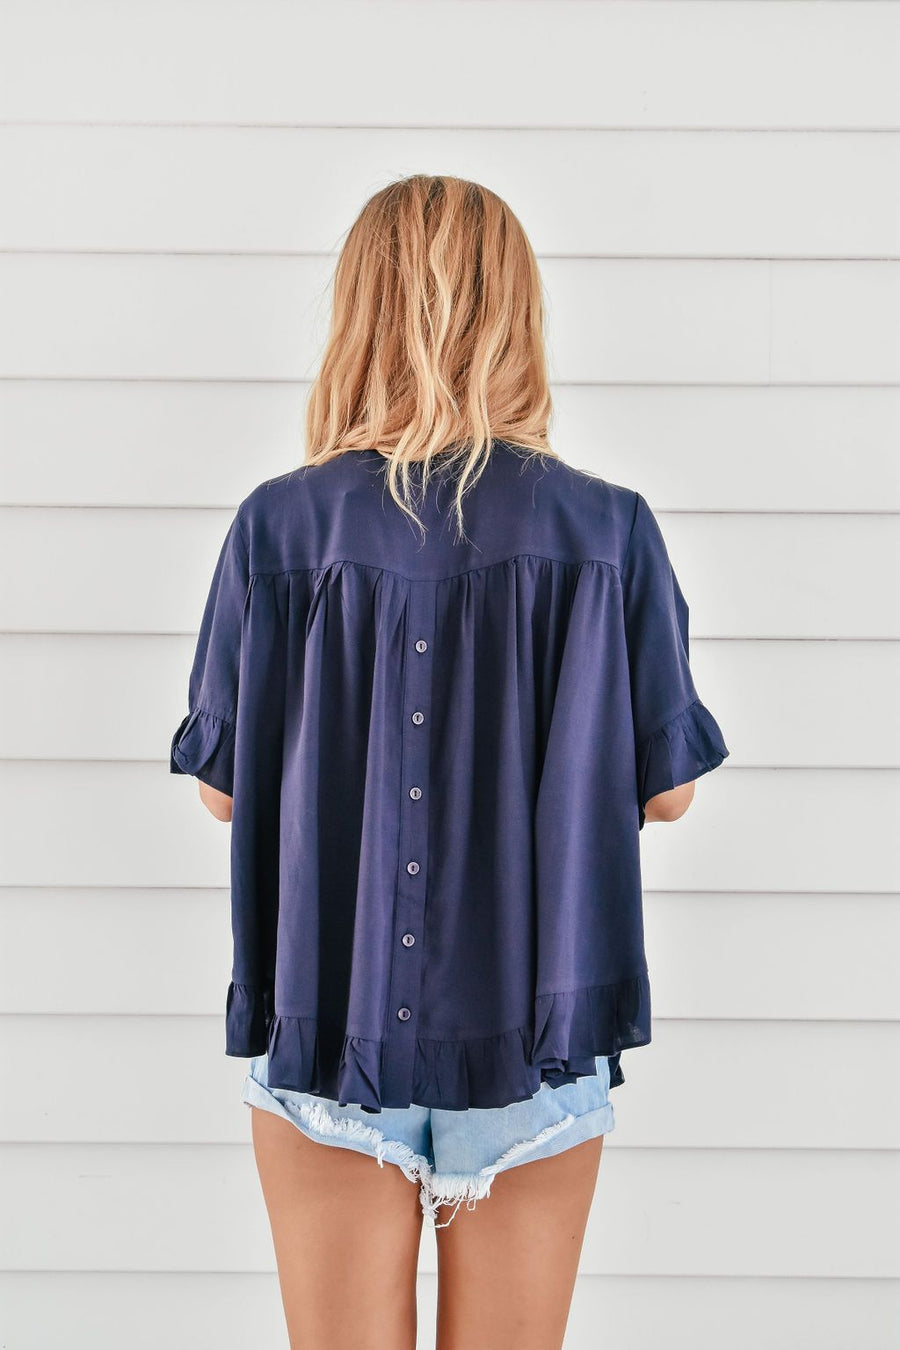 Belle Top | Navy - Gray Label Top Gray.Label